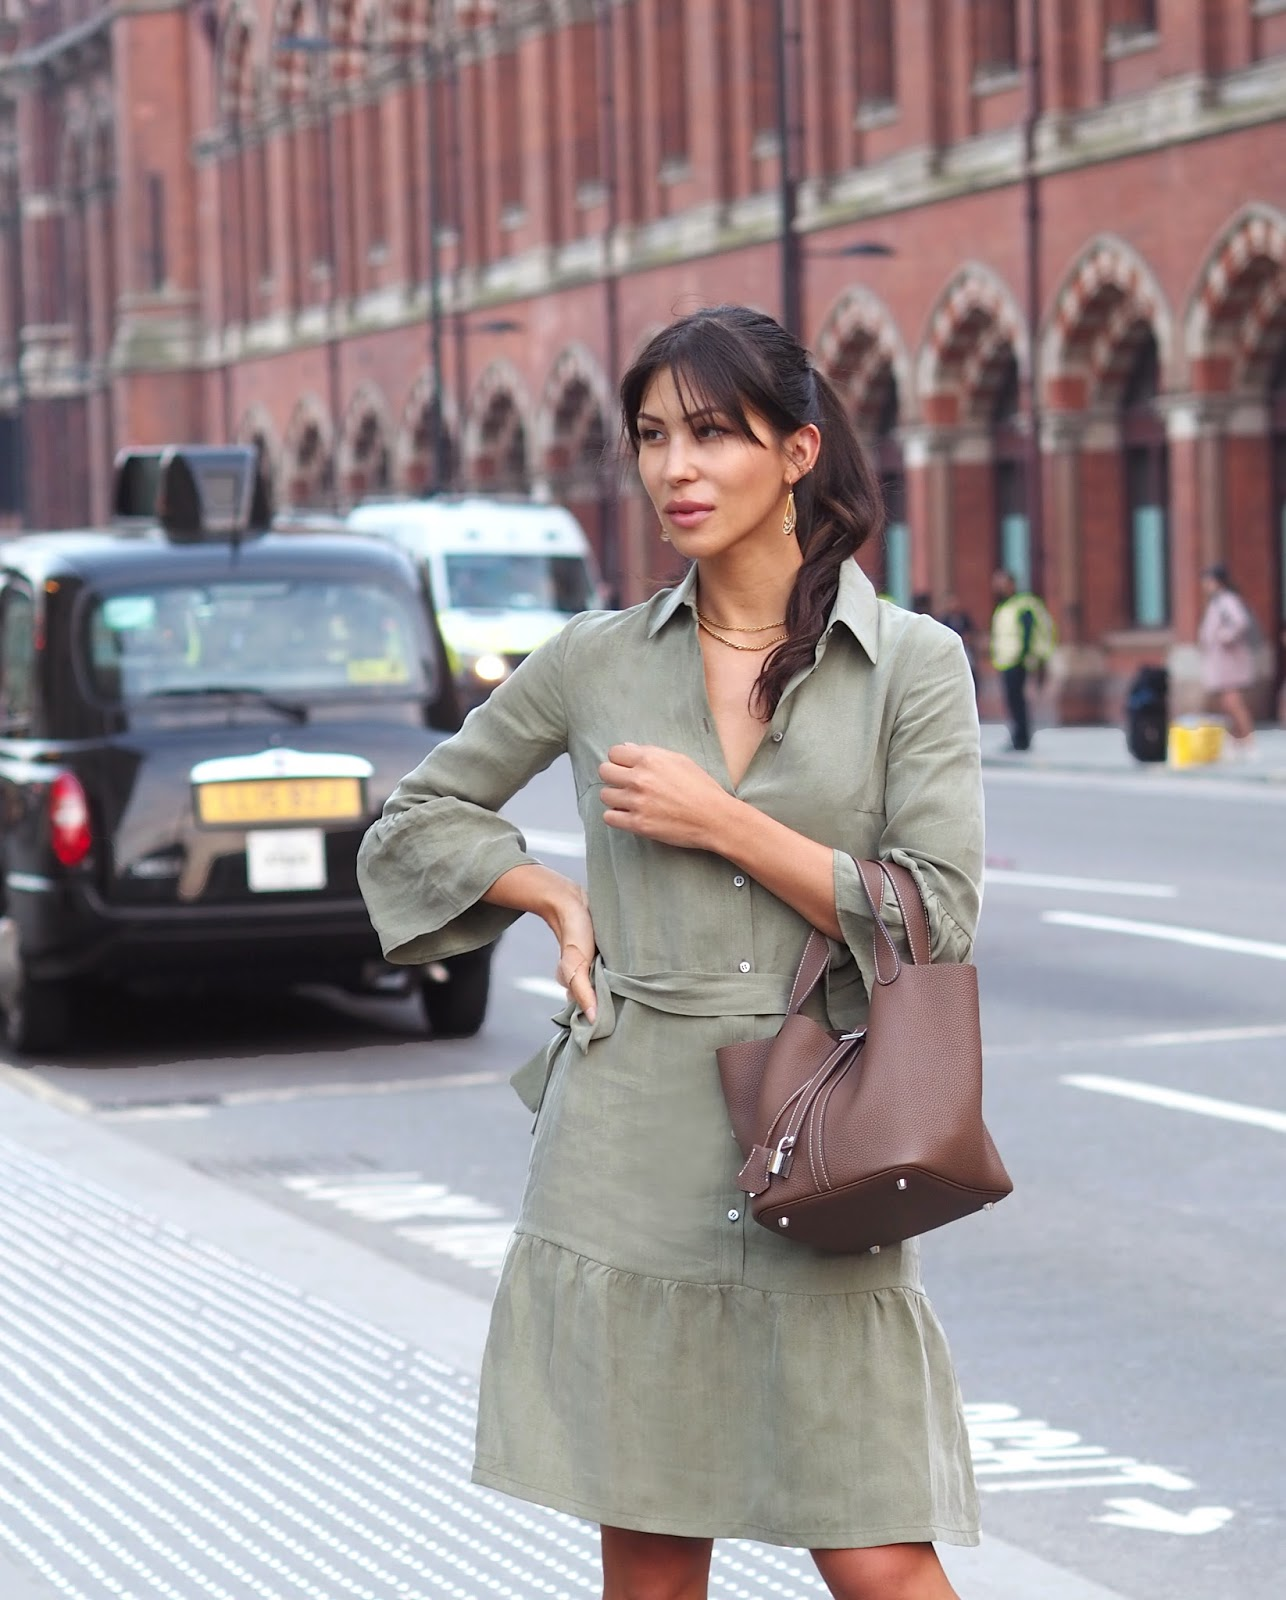 Euriental | luxury travel & style | Oui London dress, Hermes bag, H&M shoes in King's Cross London